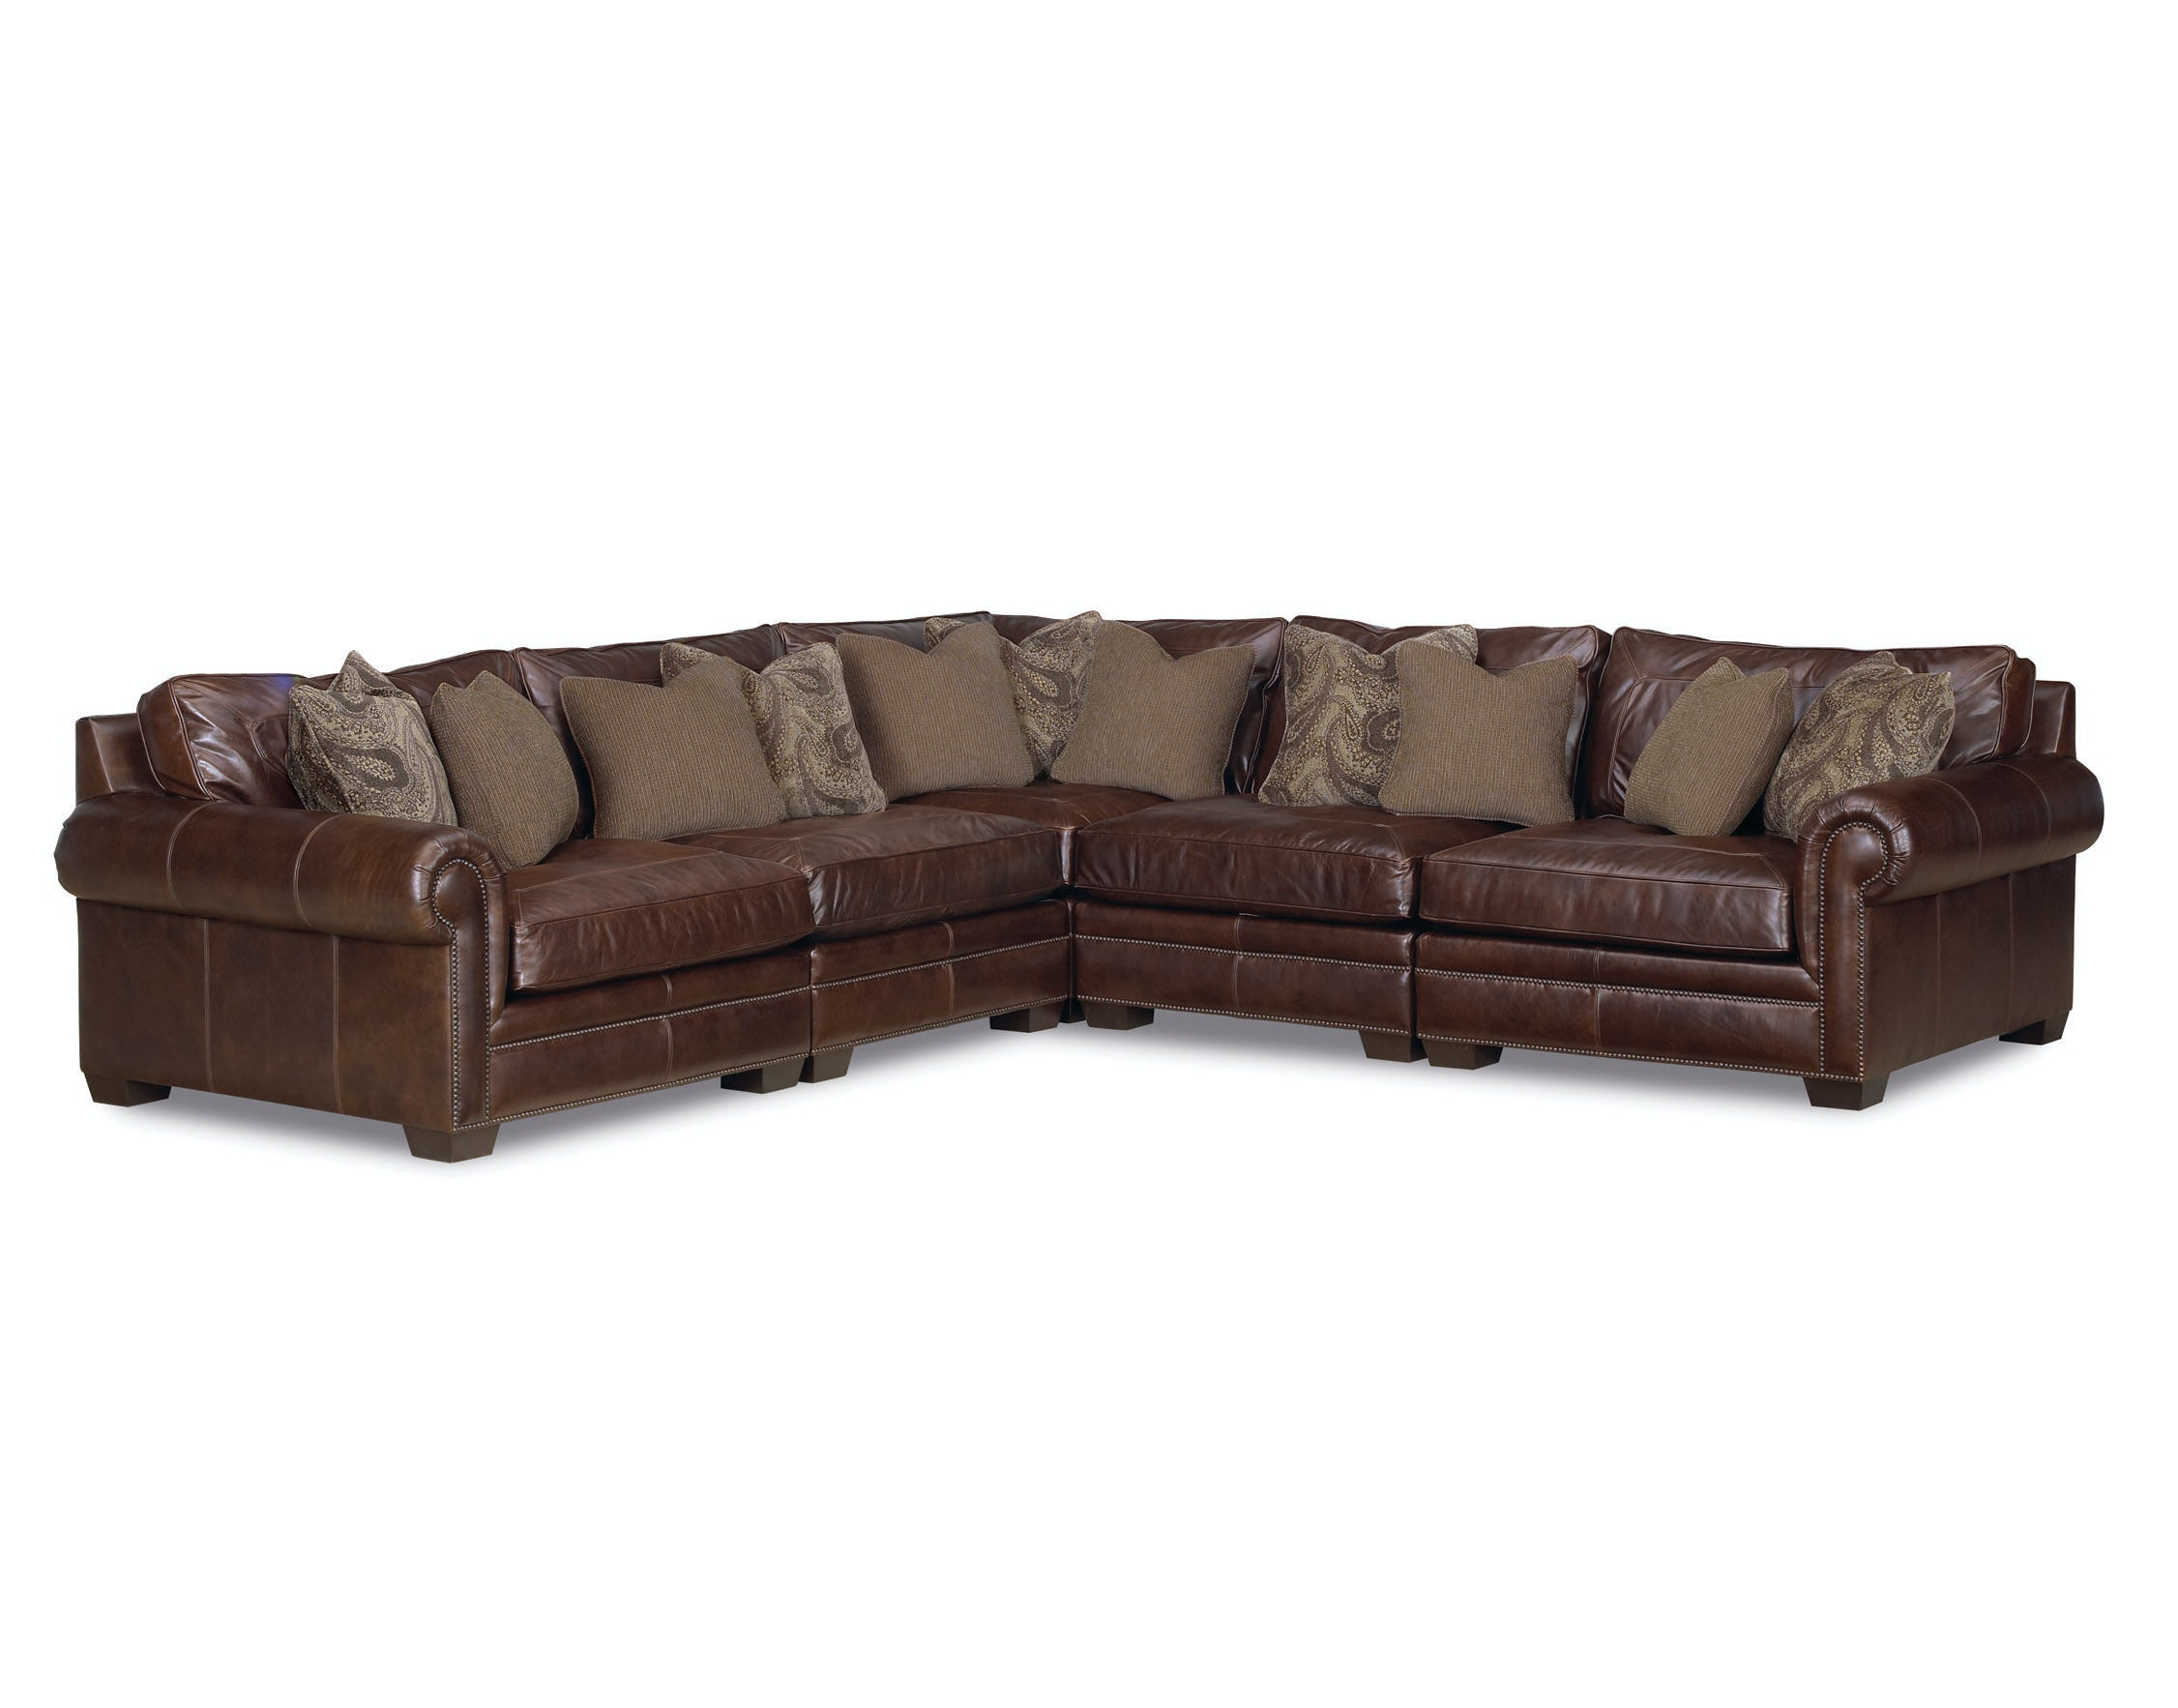 Lovely Grandview 5 Piece Leather Sectional GP:L106